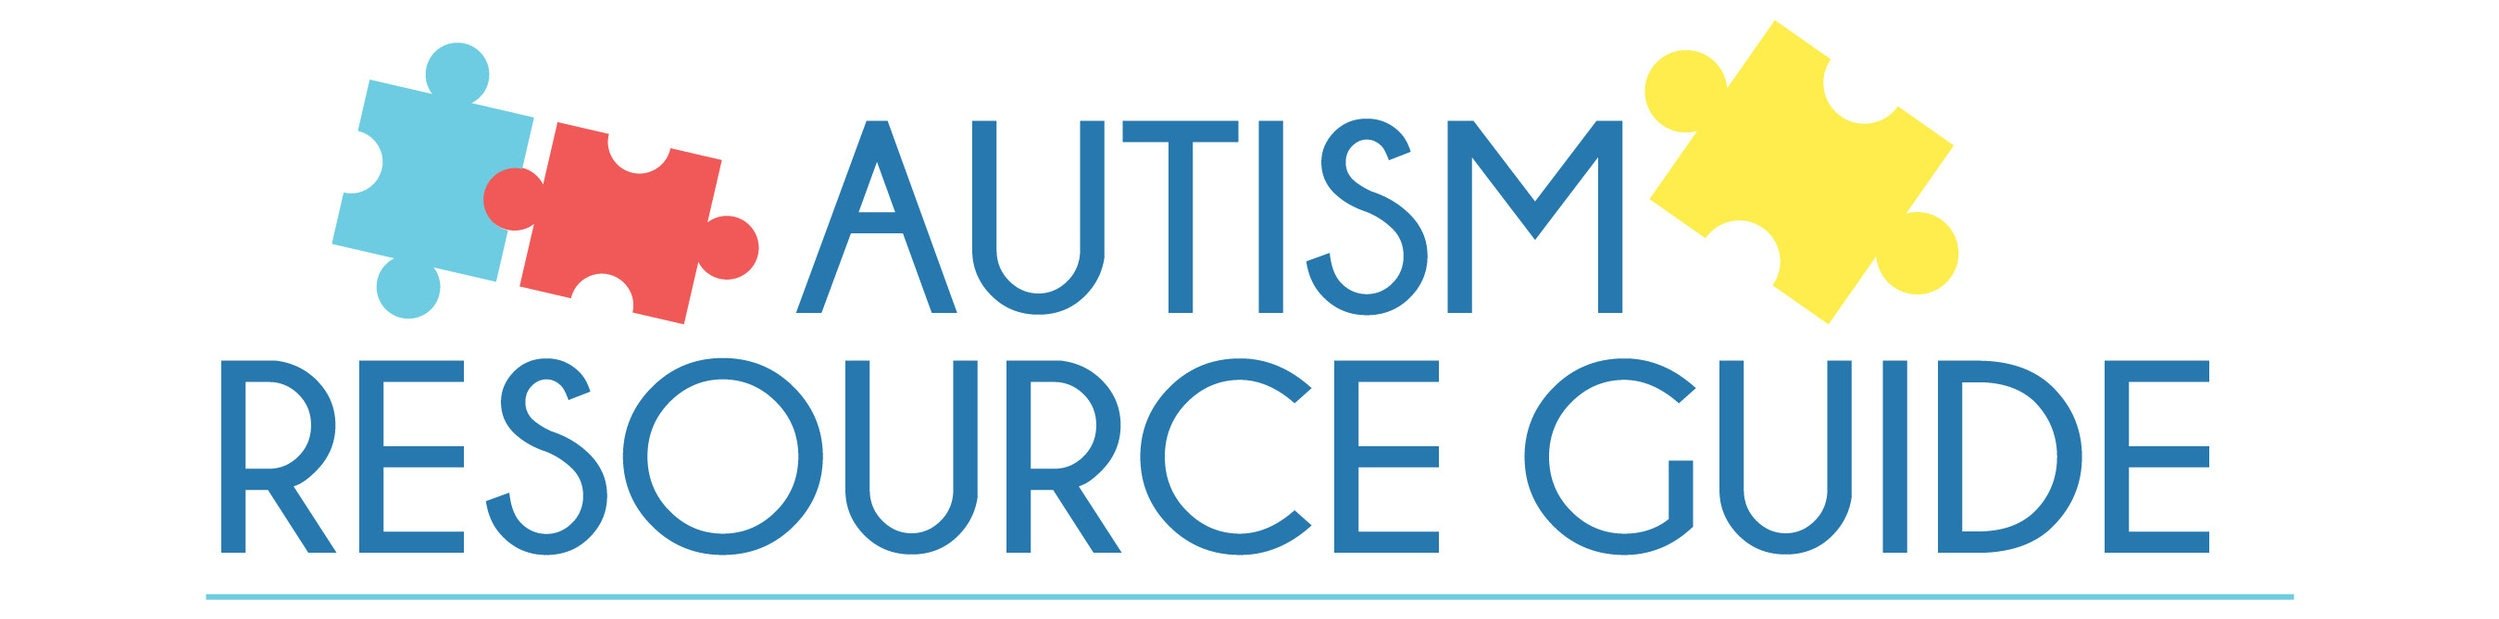 Autism Resource Guide 2019.jpg